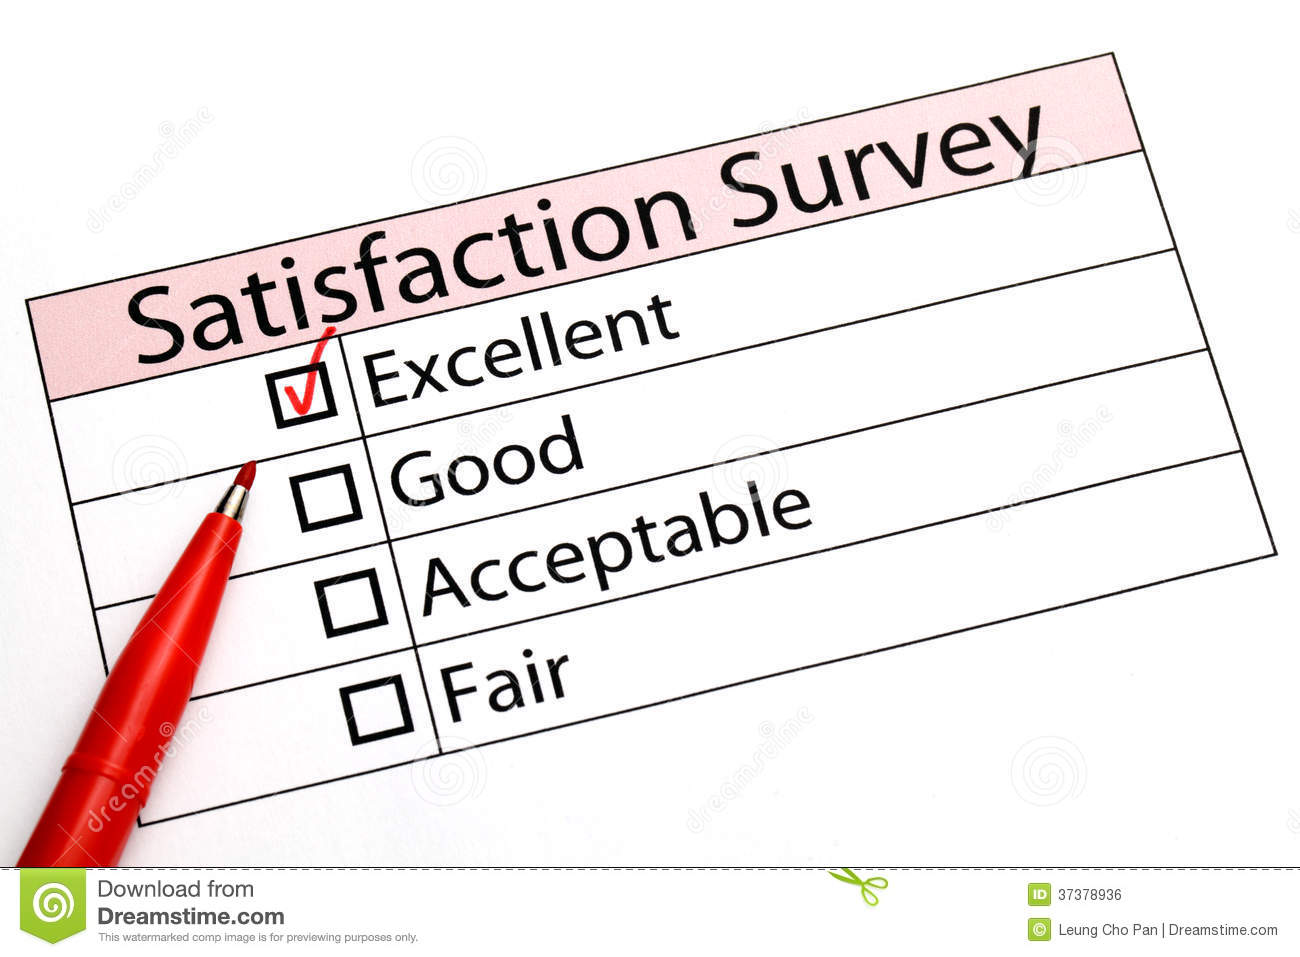 evaluating the effectiveness of customer service policies tourism essay About us we value excellent academic writing and strive to provide outstanding essay writing services each and every time you place an order we write essays, research papers, term papers, course works, reviews, theses and more, so our primary mission is to help you succeed academically.